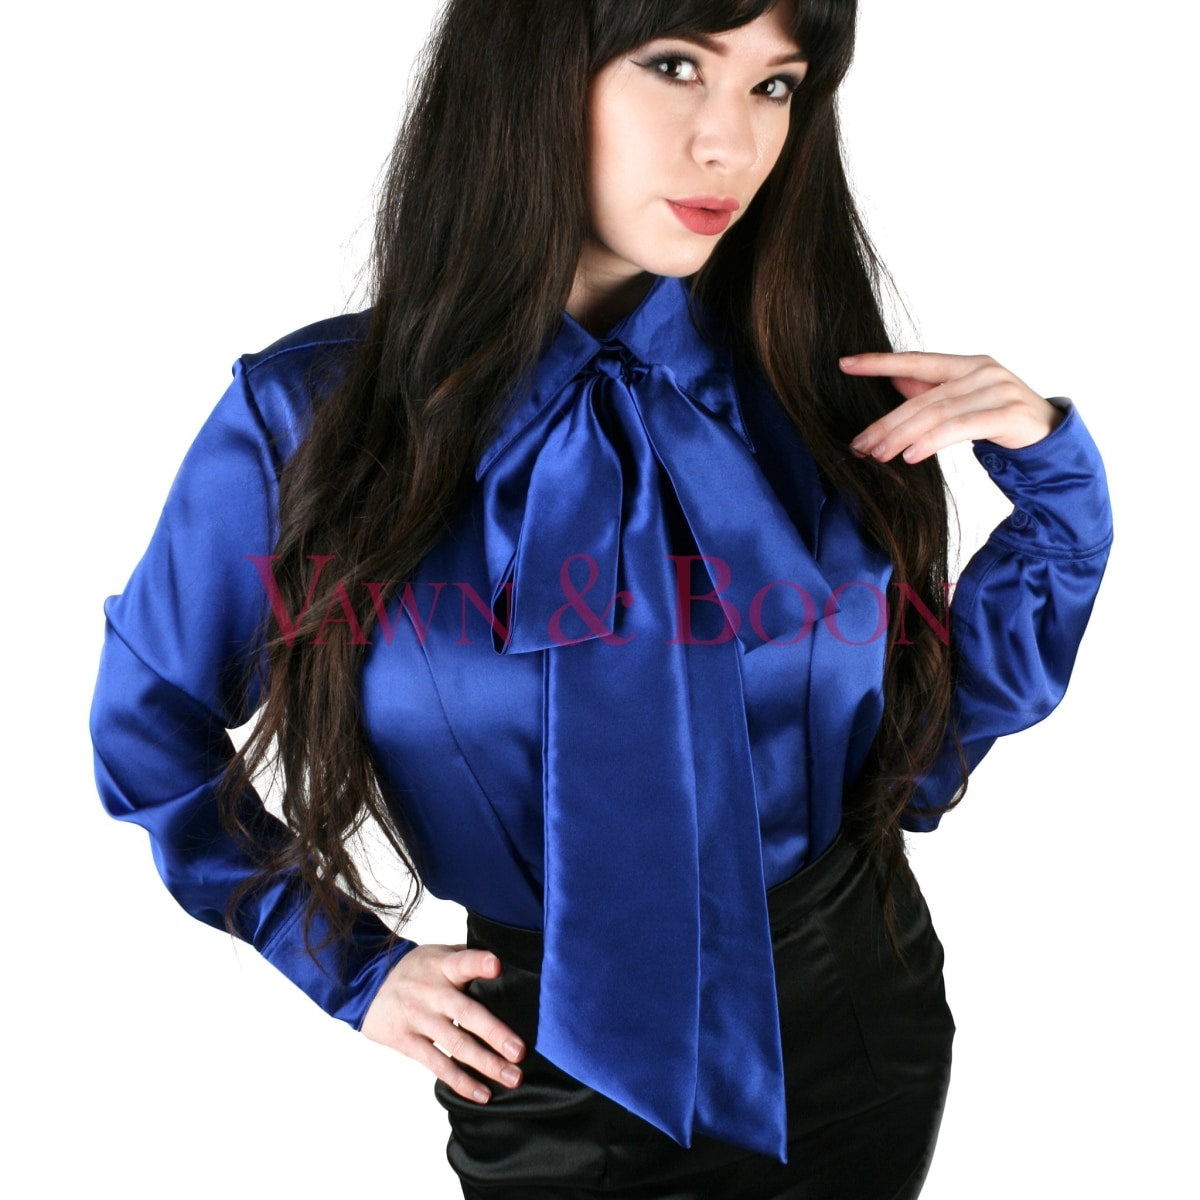 Vawn-and-Boon-blue-satin-crossdresser-blouse